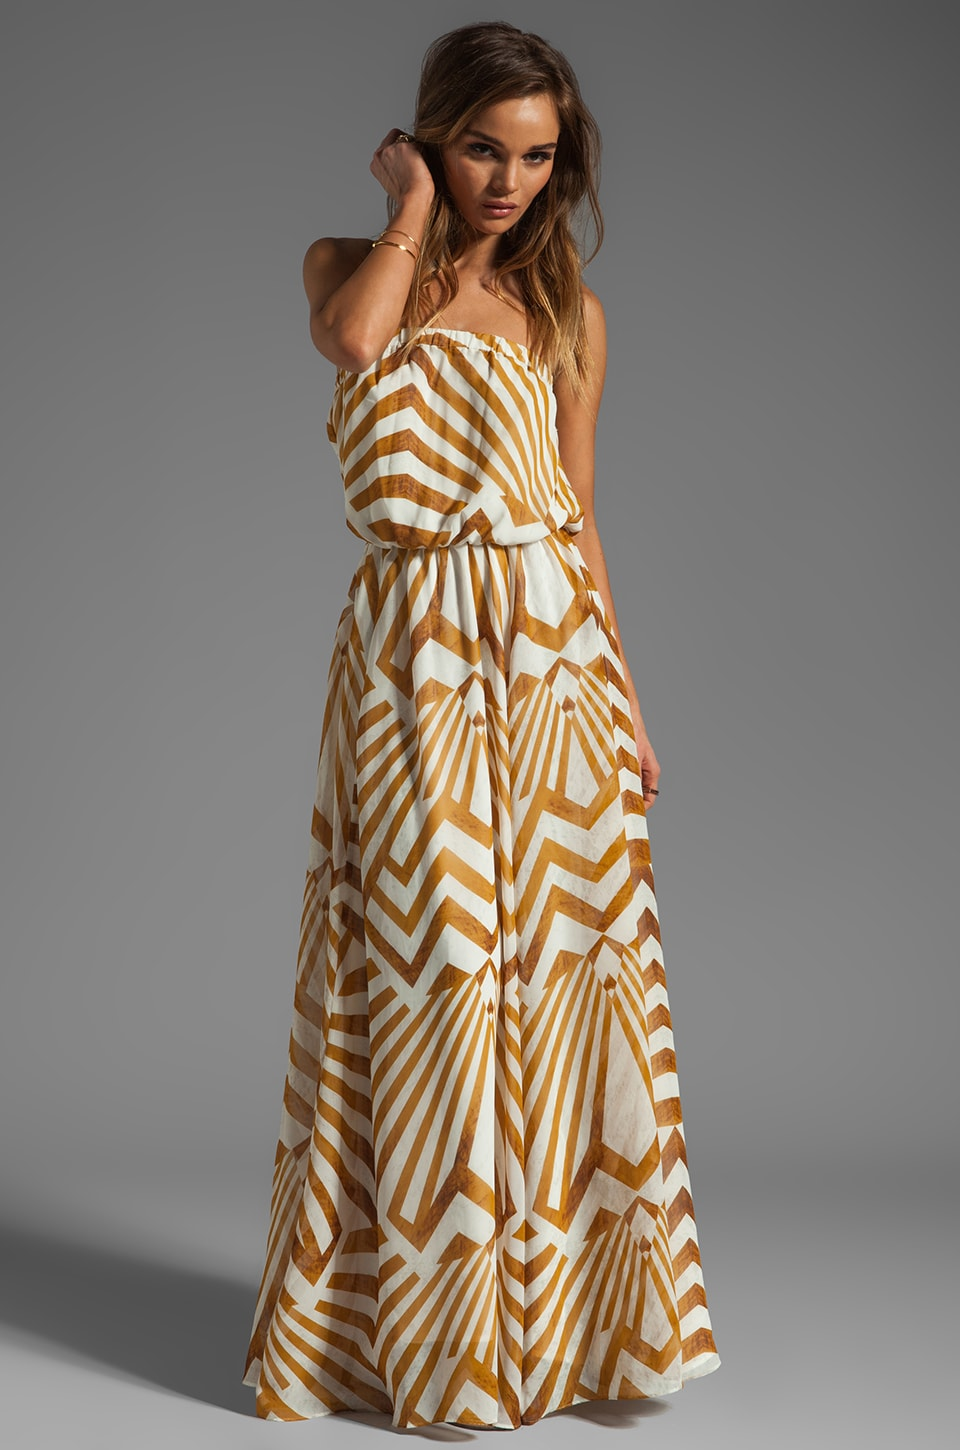 BB Dakota Imelda Golden Pyramid Printed Chiffon Maxi Dress in Gold